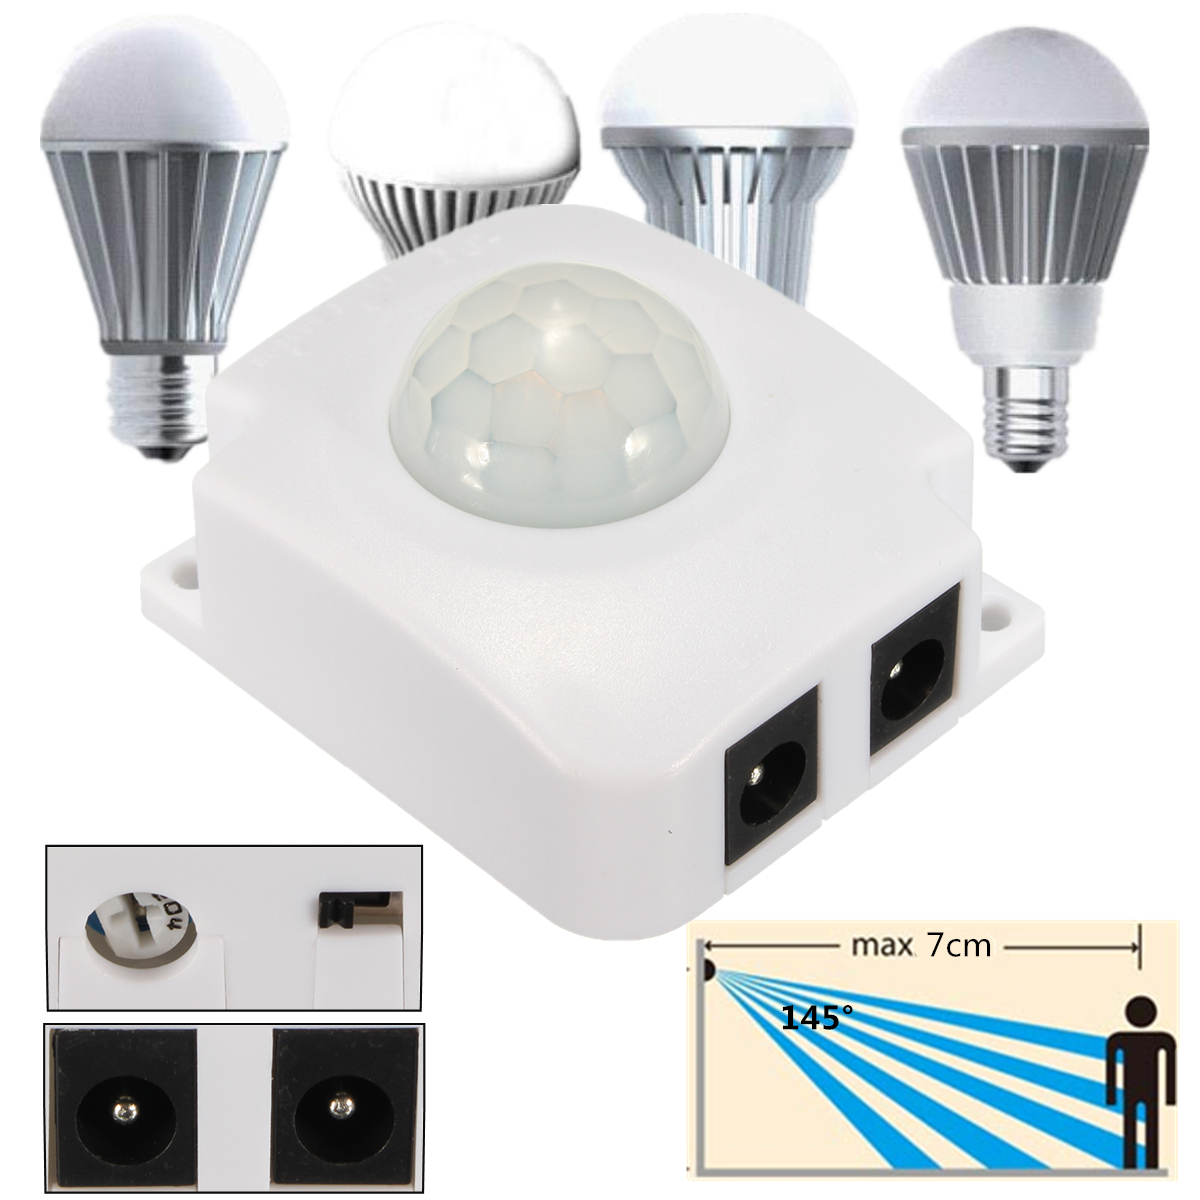 12V Automatic PIR Infrared Sensor Light Switch Save Energy Motion for LED Light Lamp